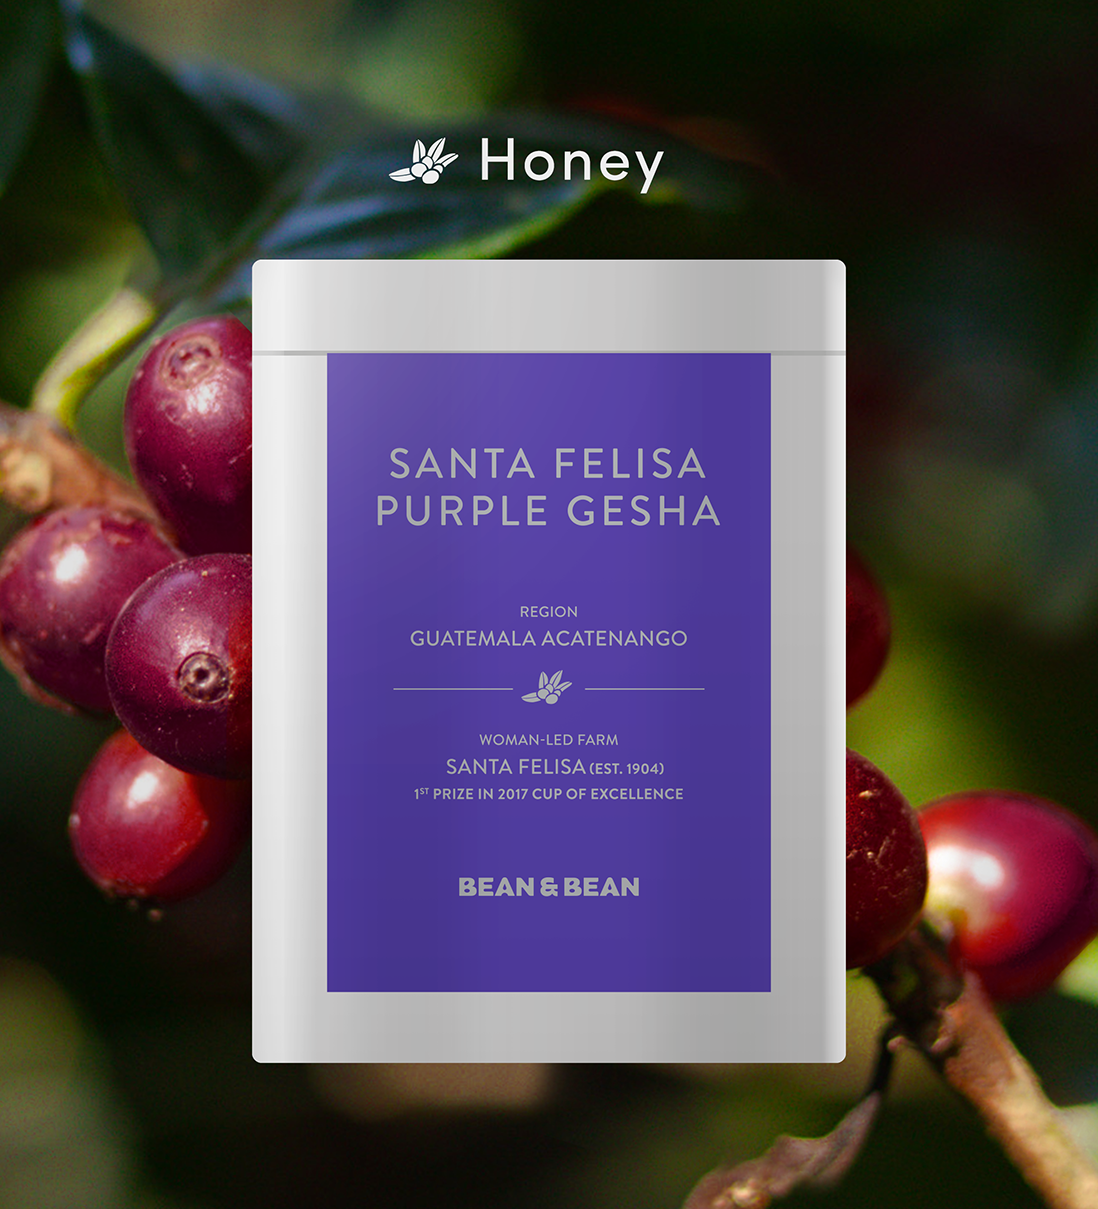 Santa Felisa Gesha Honey | Cup of Excellence Winning Farm